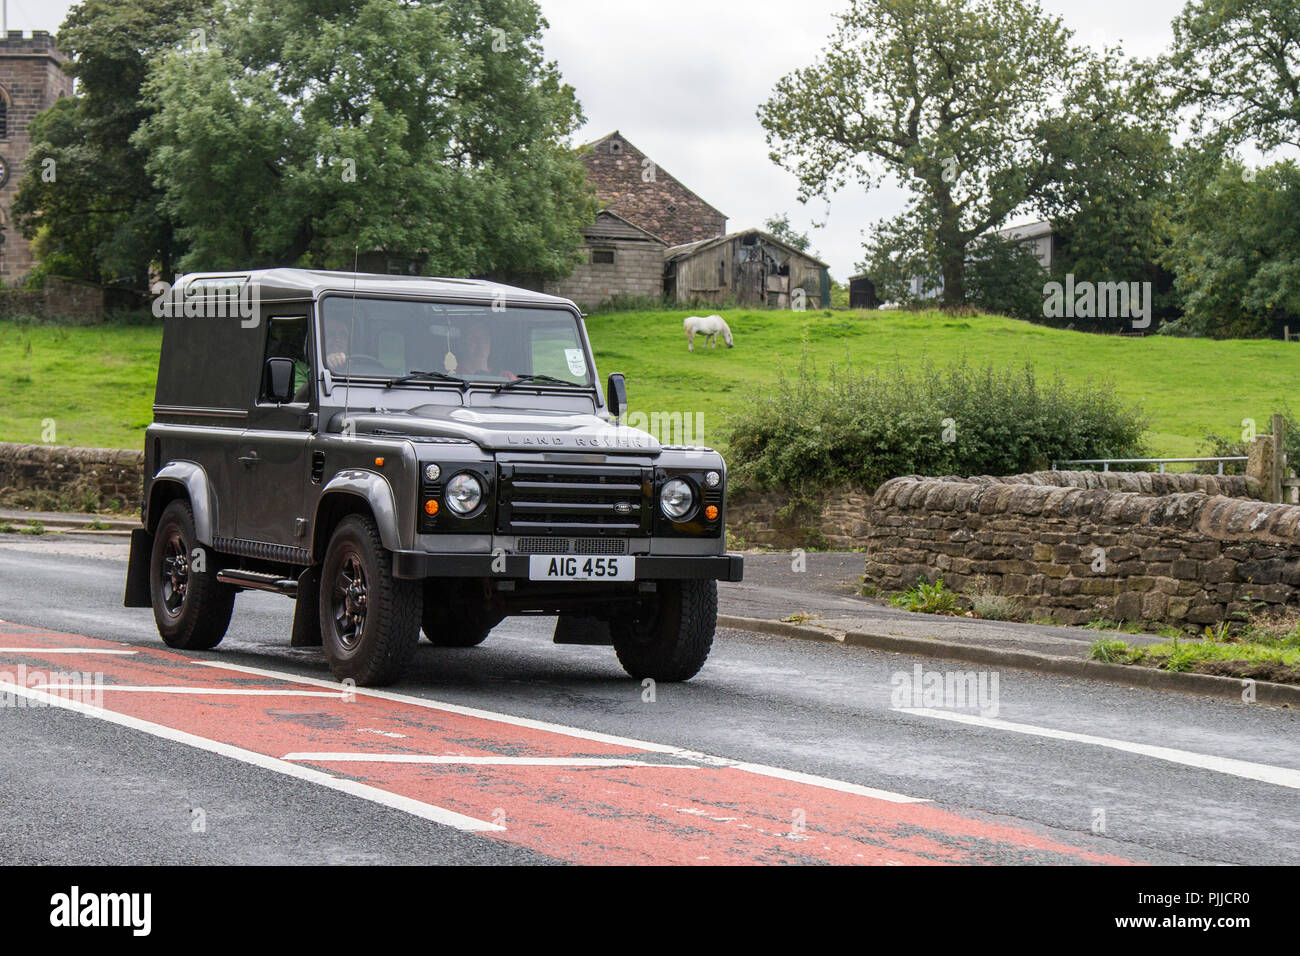 2011 Grey Land Rover Defender 90 Hard TOP TD Classic, vintage, veteran, cars of yesteryear, restored collectibles at Hoghton Tower Class Cars Rally, UK - Stock Image